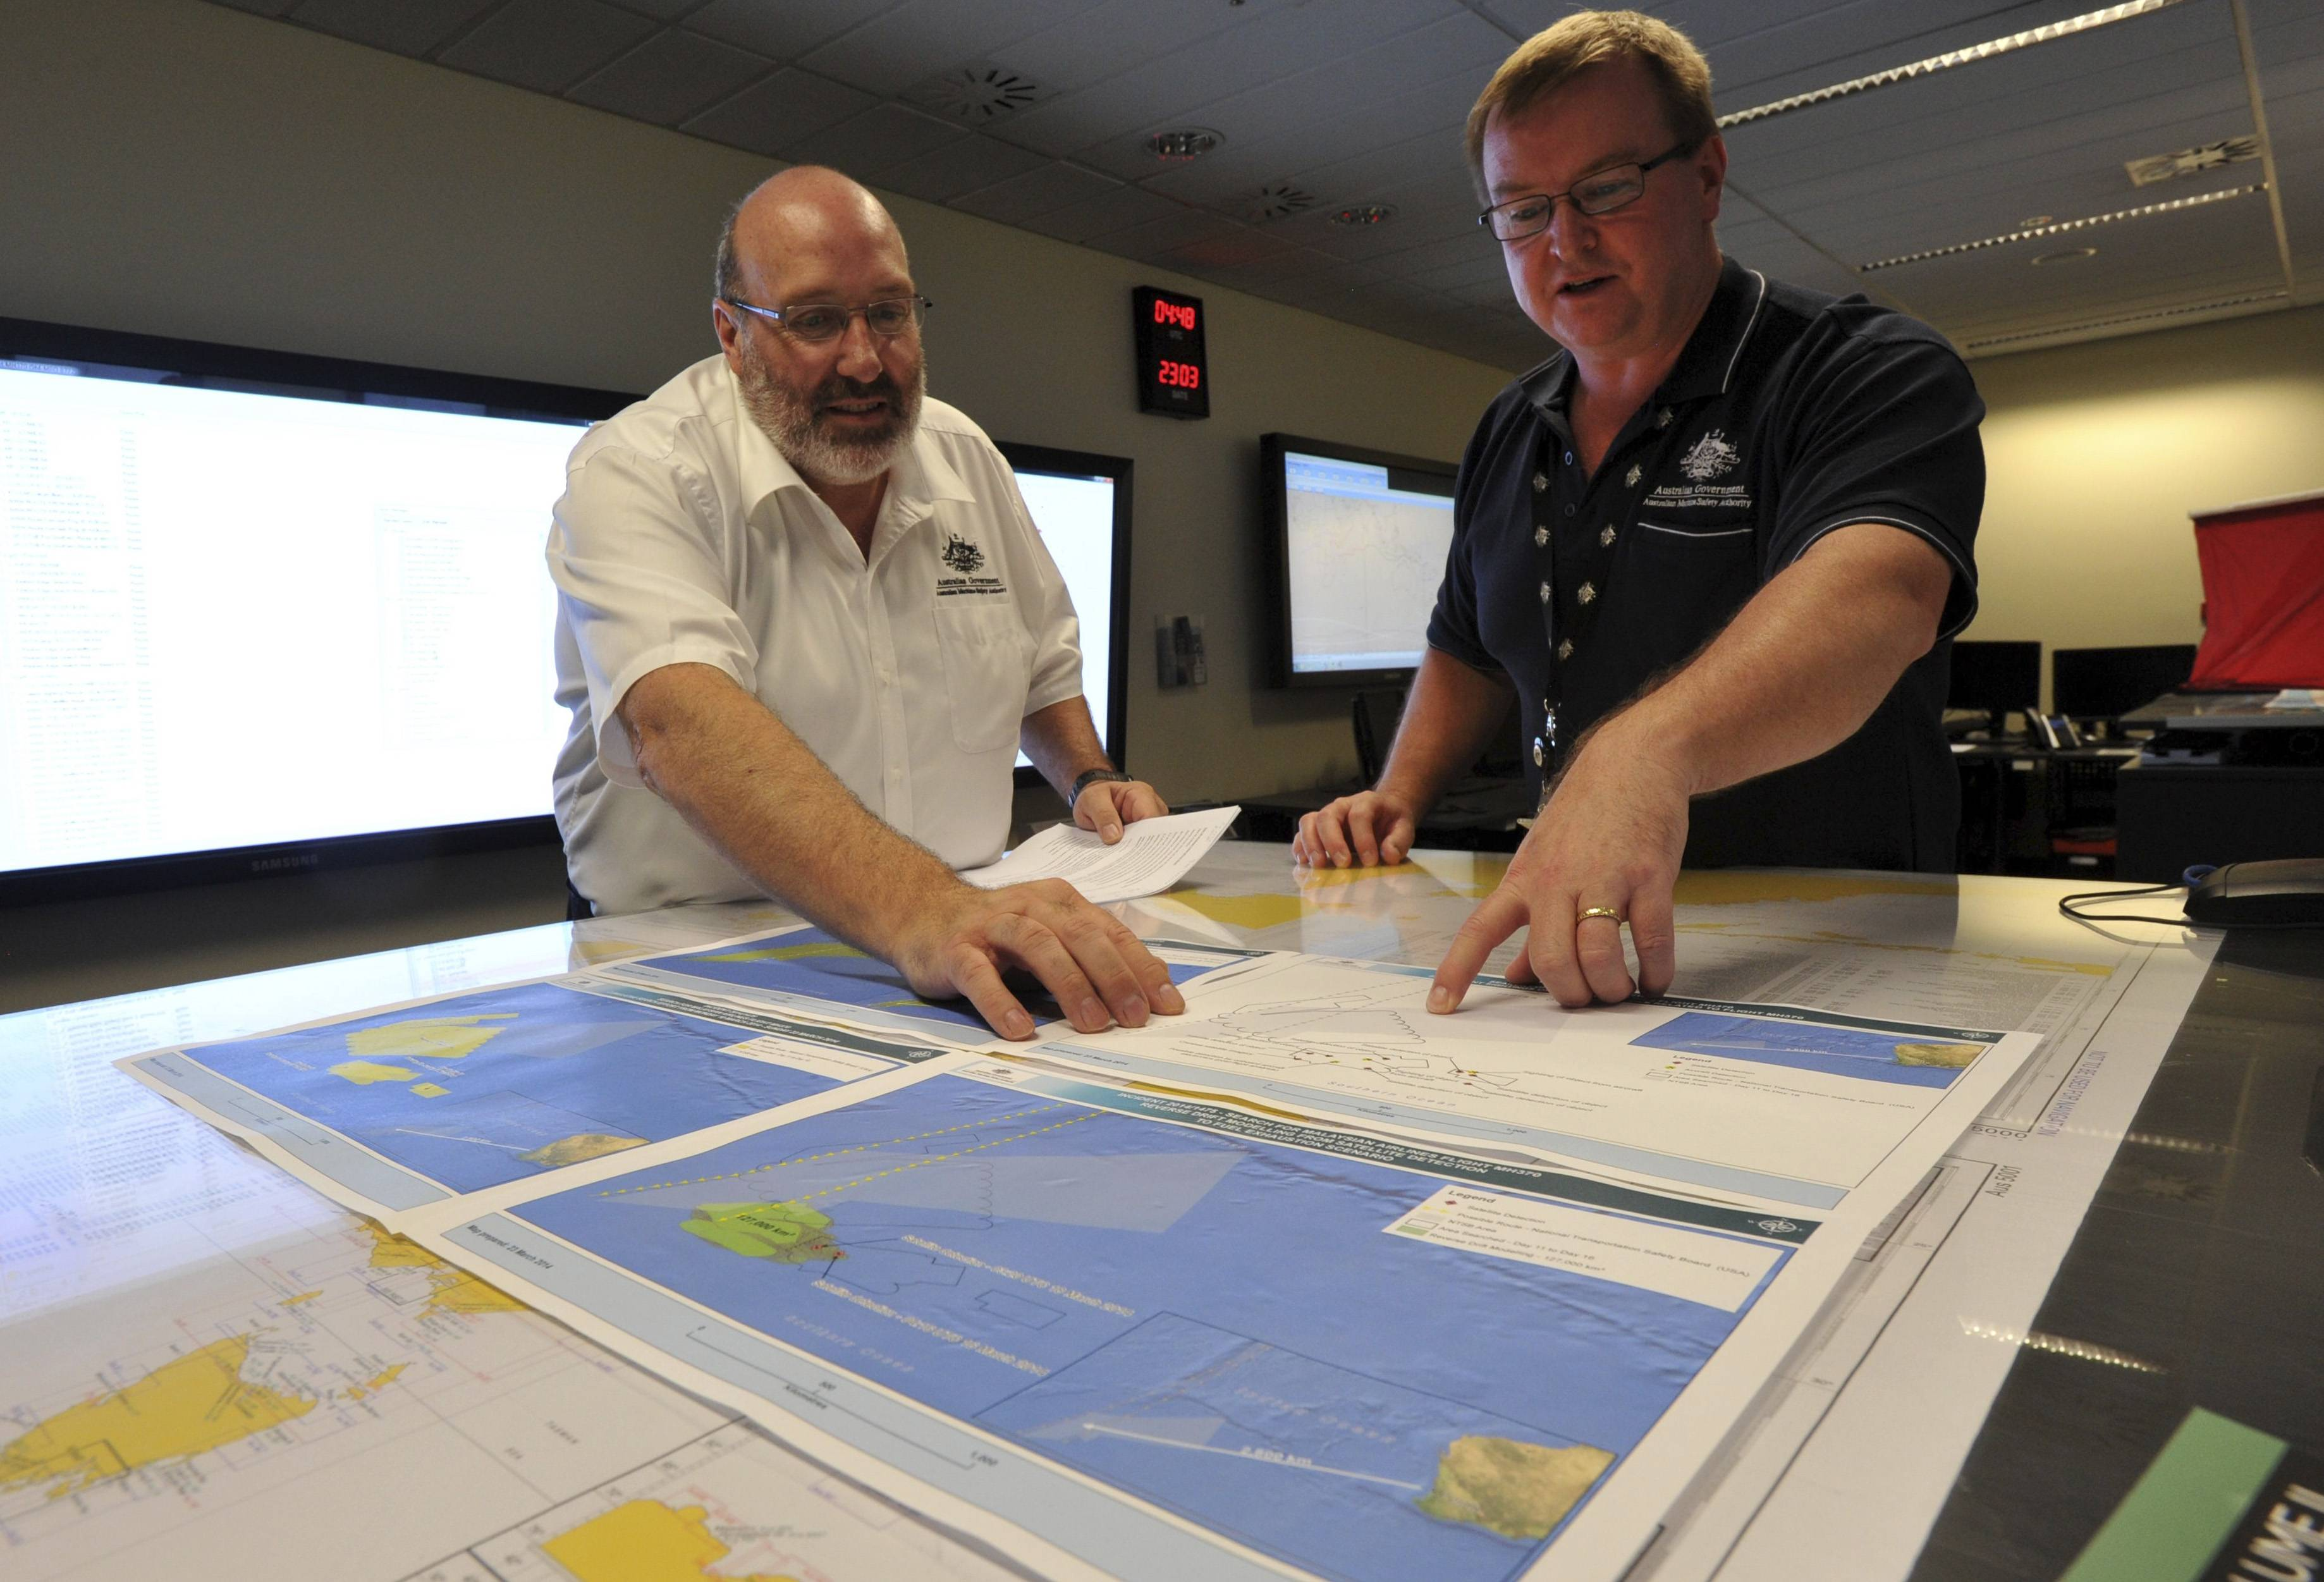 Mike Barton, rescue coordination chief, left, looks over the maps of the Indian Ocean with Alan Lloyd, manager of search and rescue operations at the Australian Maritime Safety Authority's rescue coordination center in Canberra Sunday.